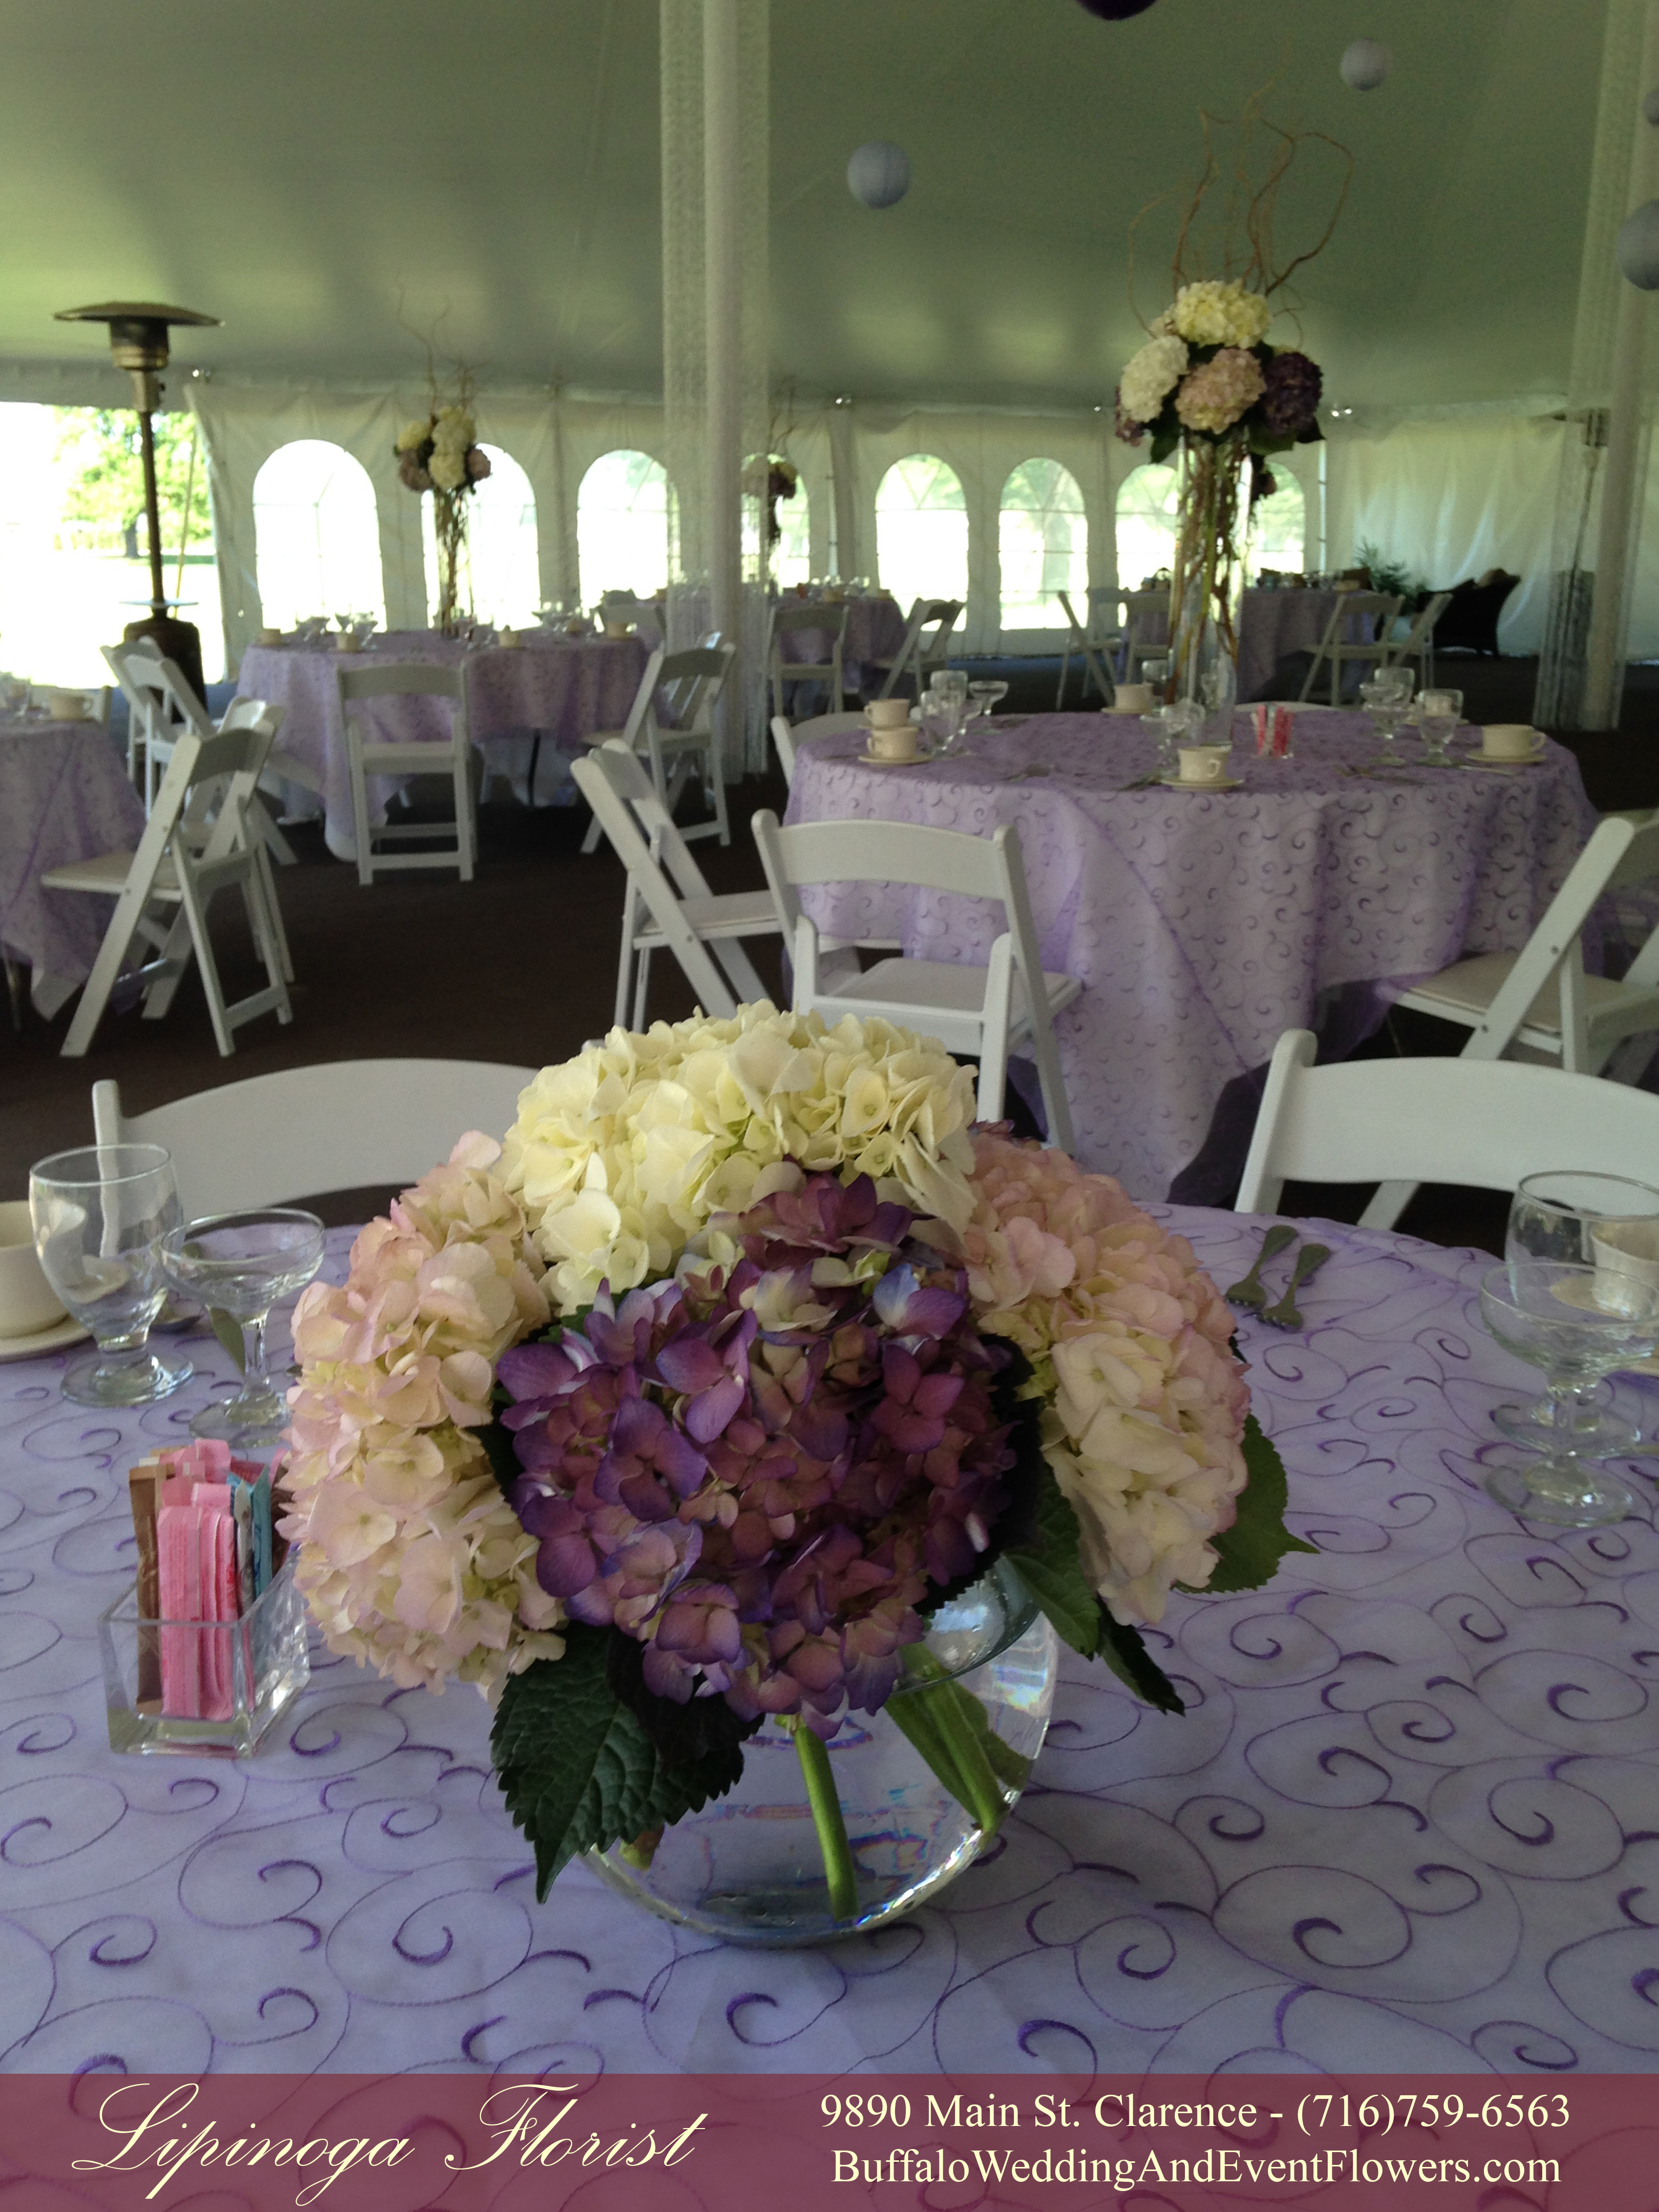 Curly Willow Buffalo Wedding Amp Event Flowers By Lipinoga